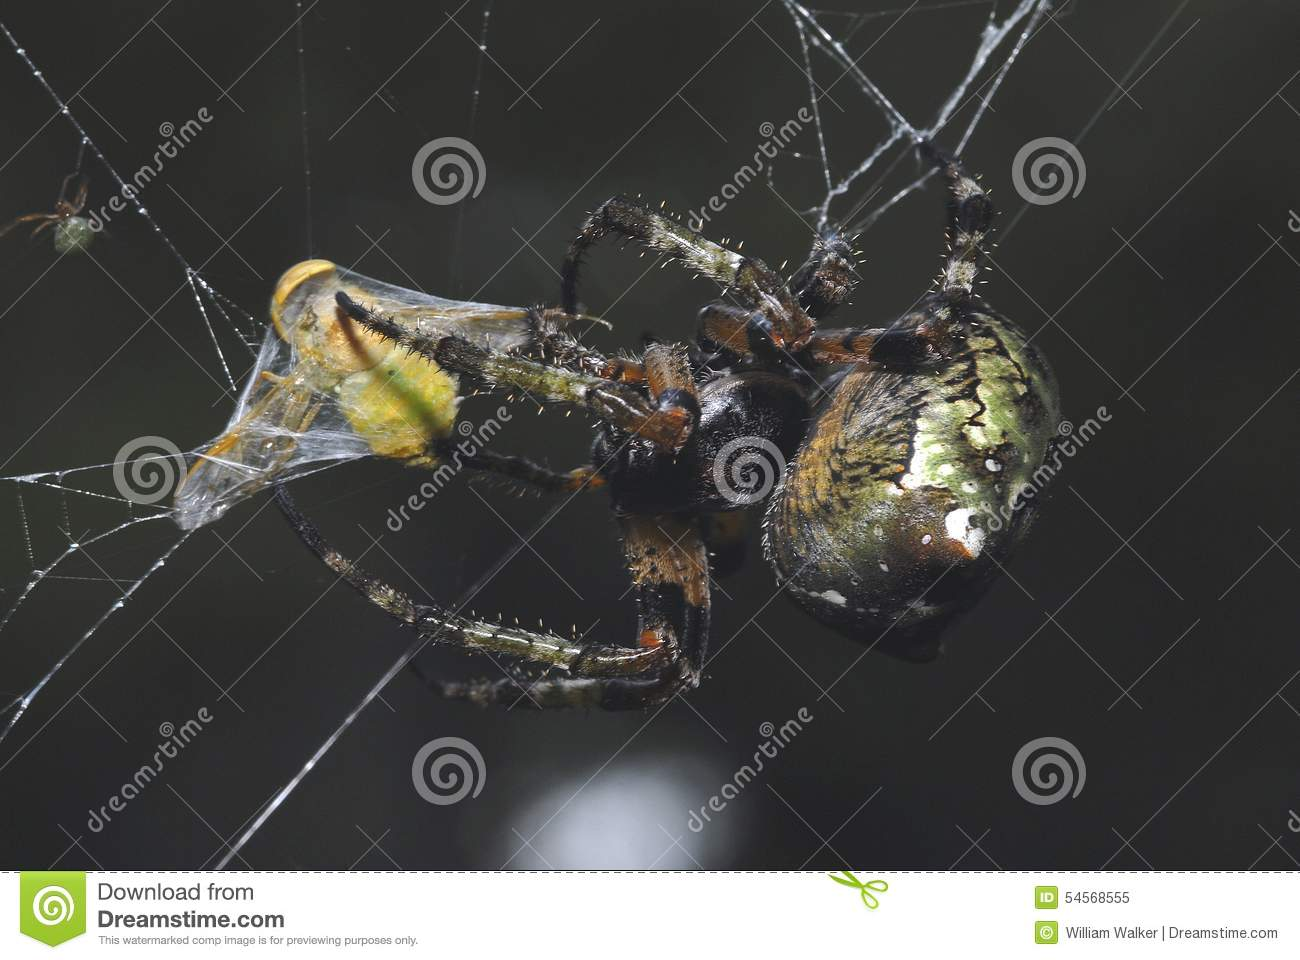 along came a spider download